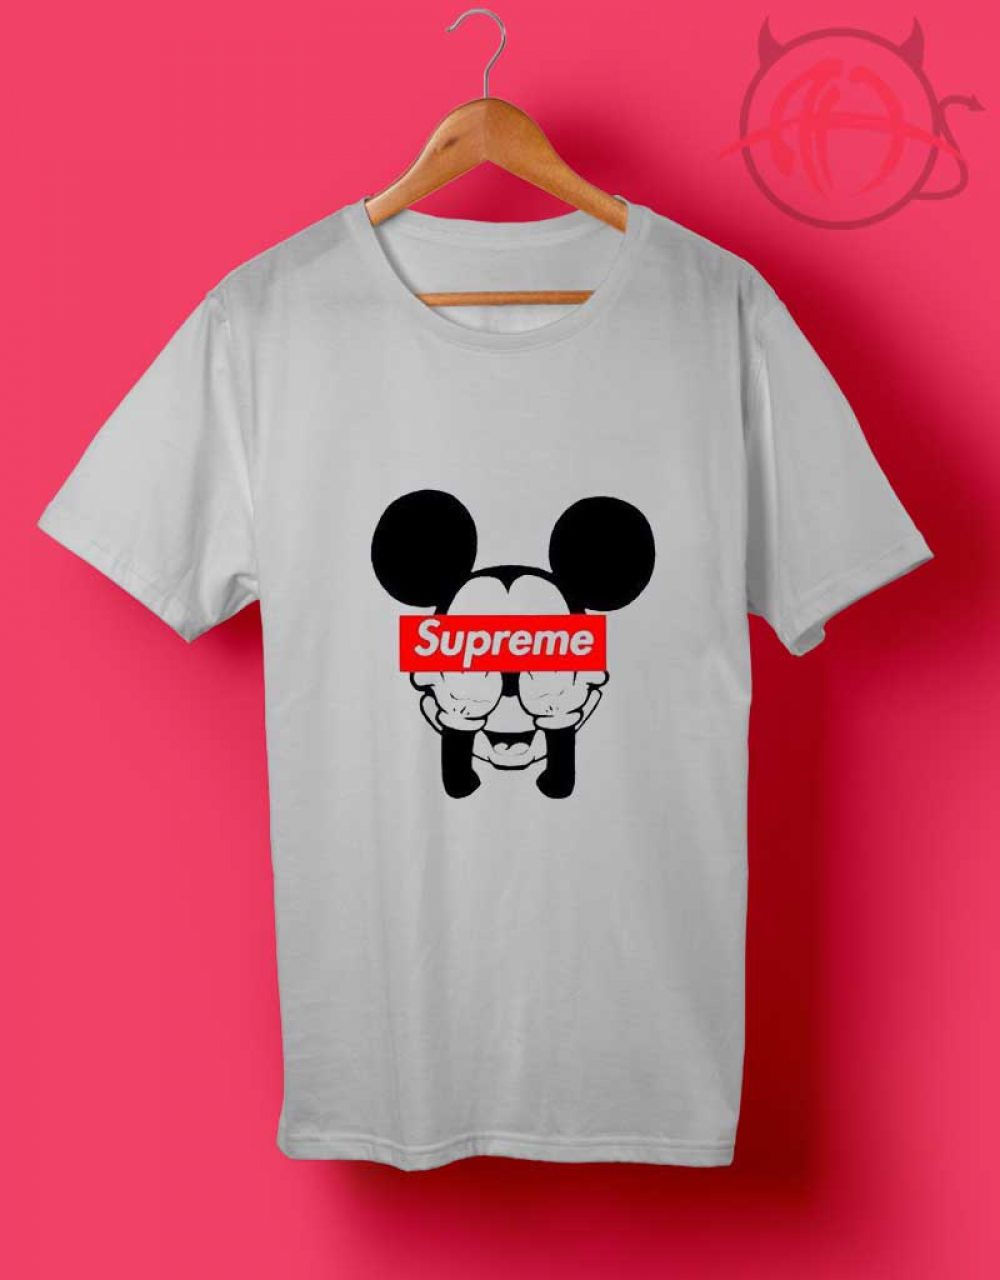 3c3753ca1858 Mickey Mouse Supreme T Shirt   14.50  Tee  Hype  Outfits  Outfit  Hypebeast   fashion  shirt  Tees  Tops  Teen